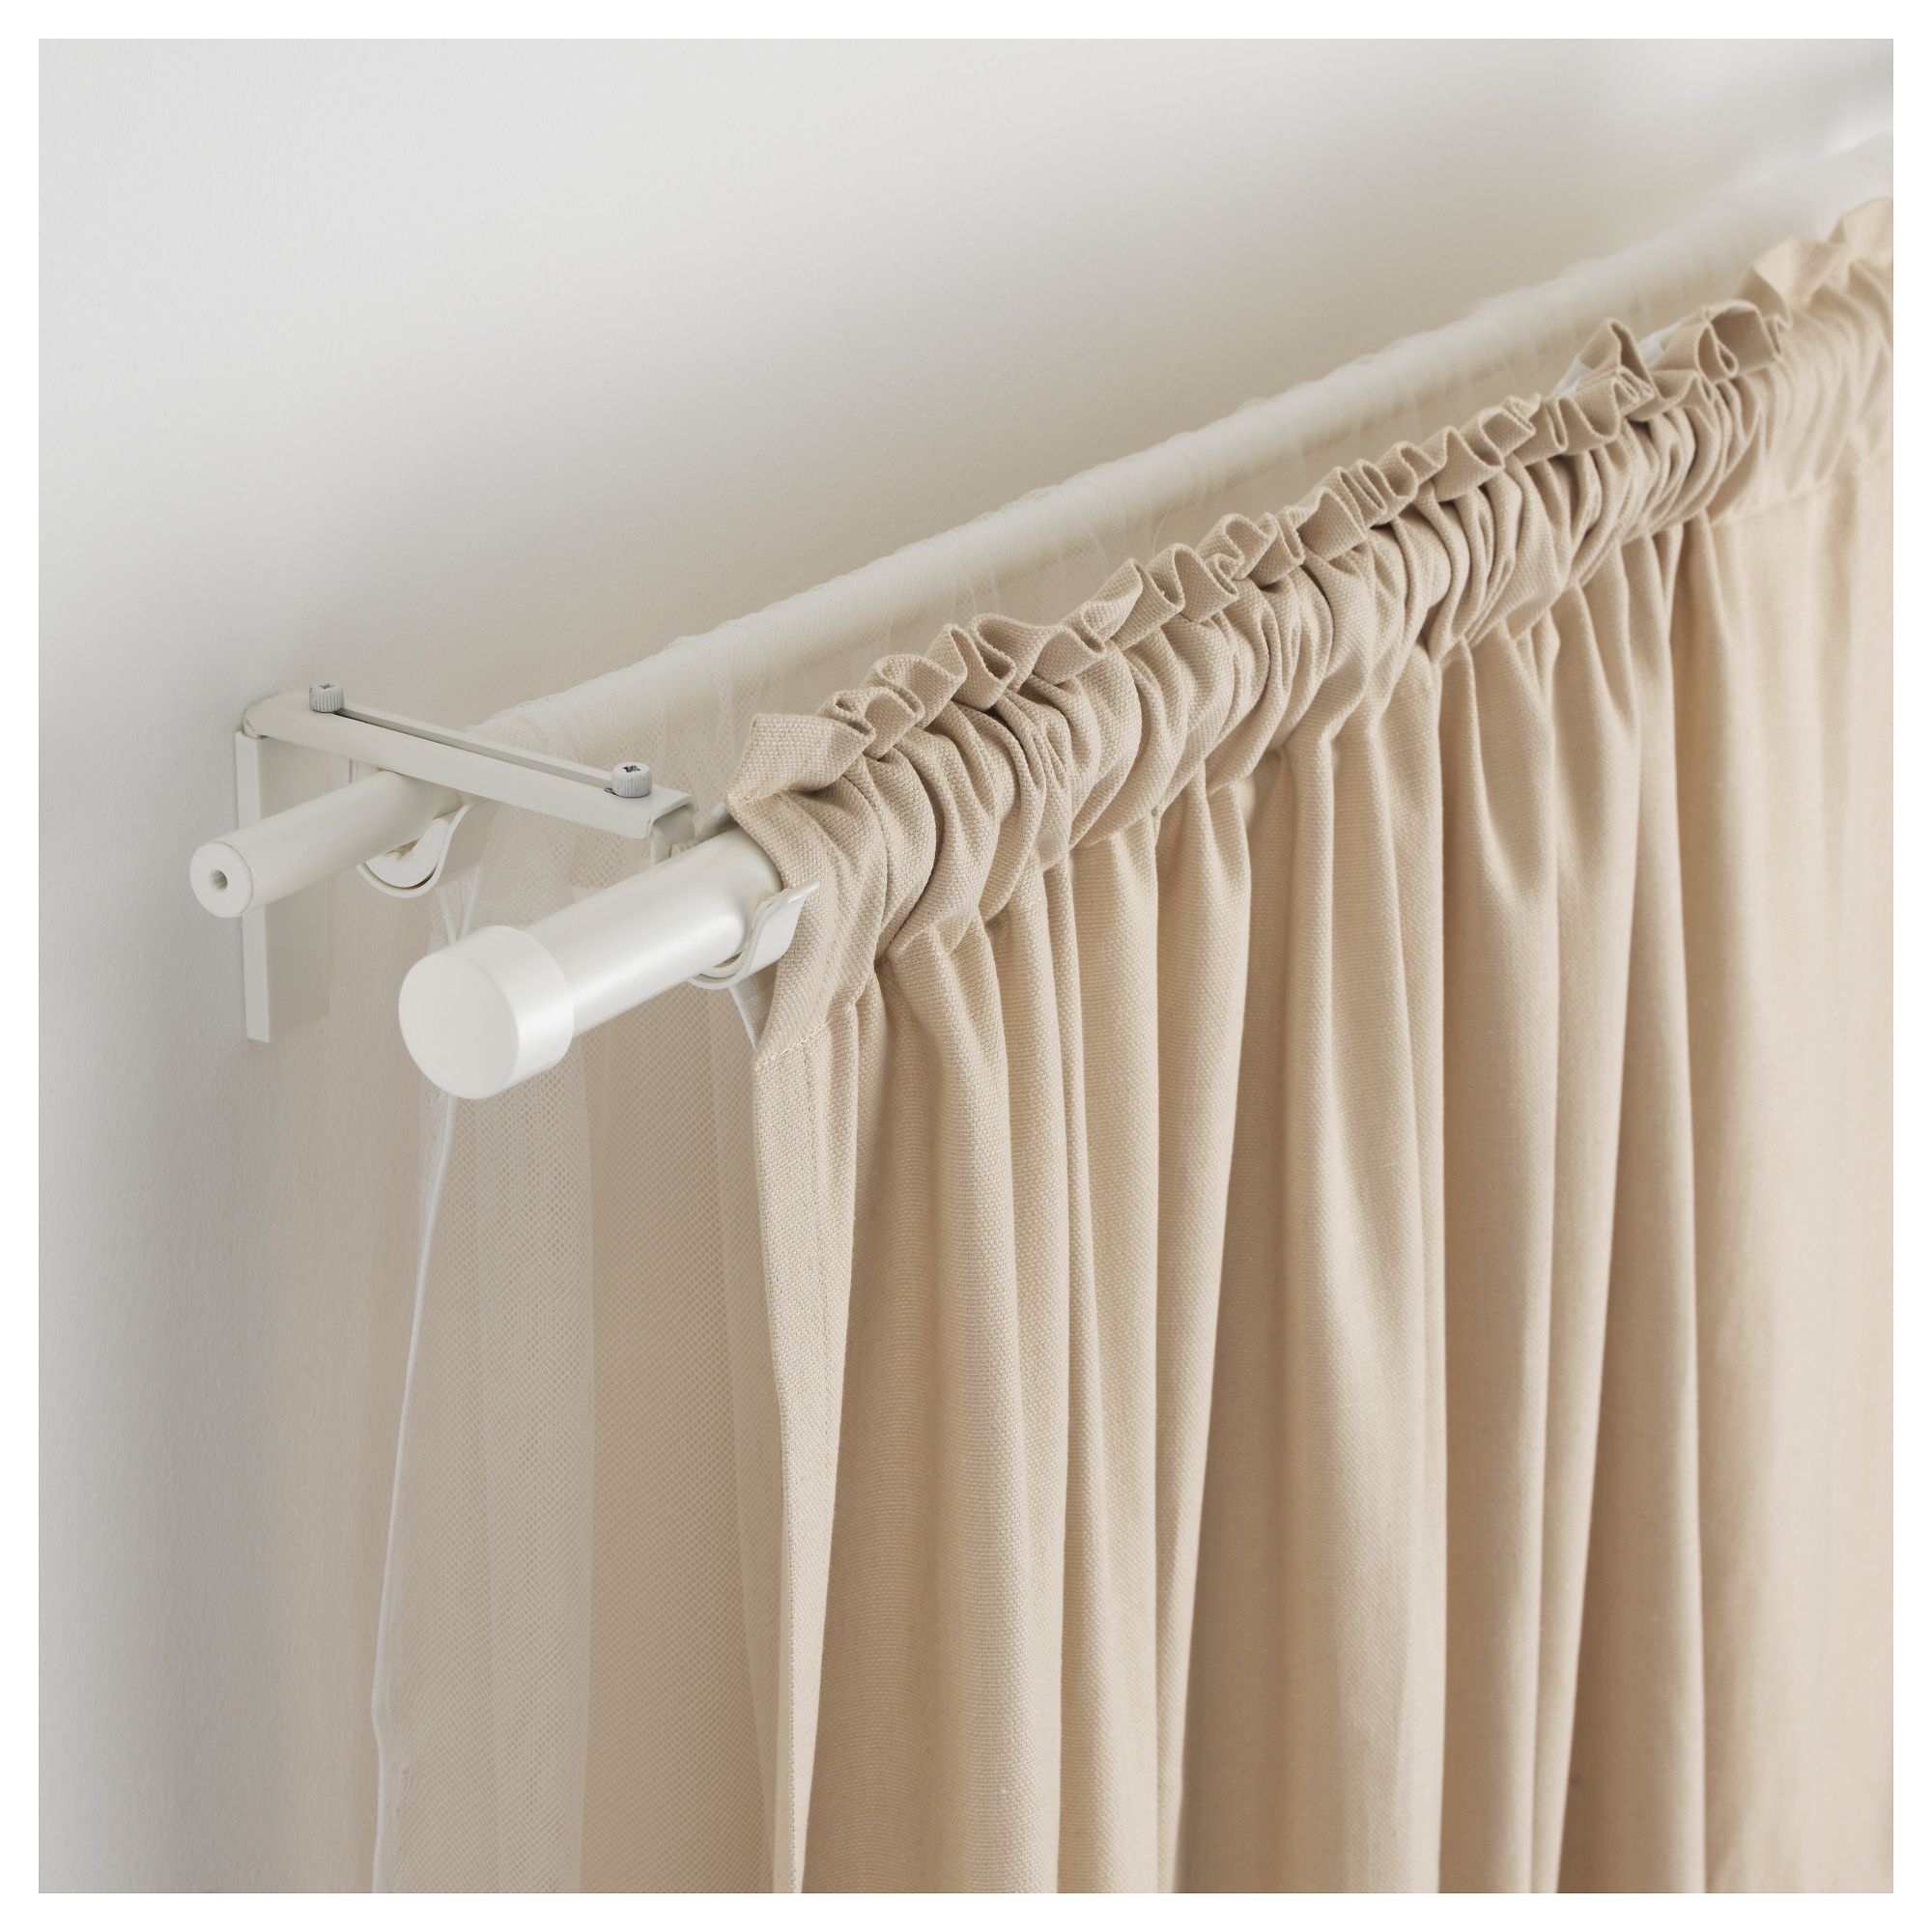 Ikea R 196 Cka Hugad Double Curtain Rod Combination White